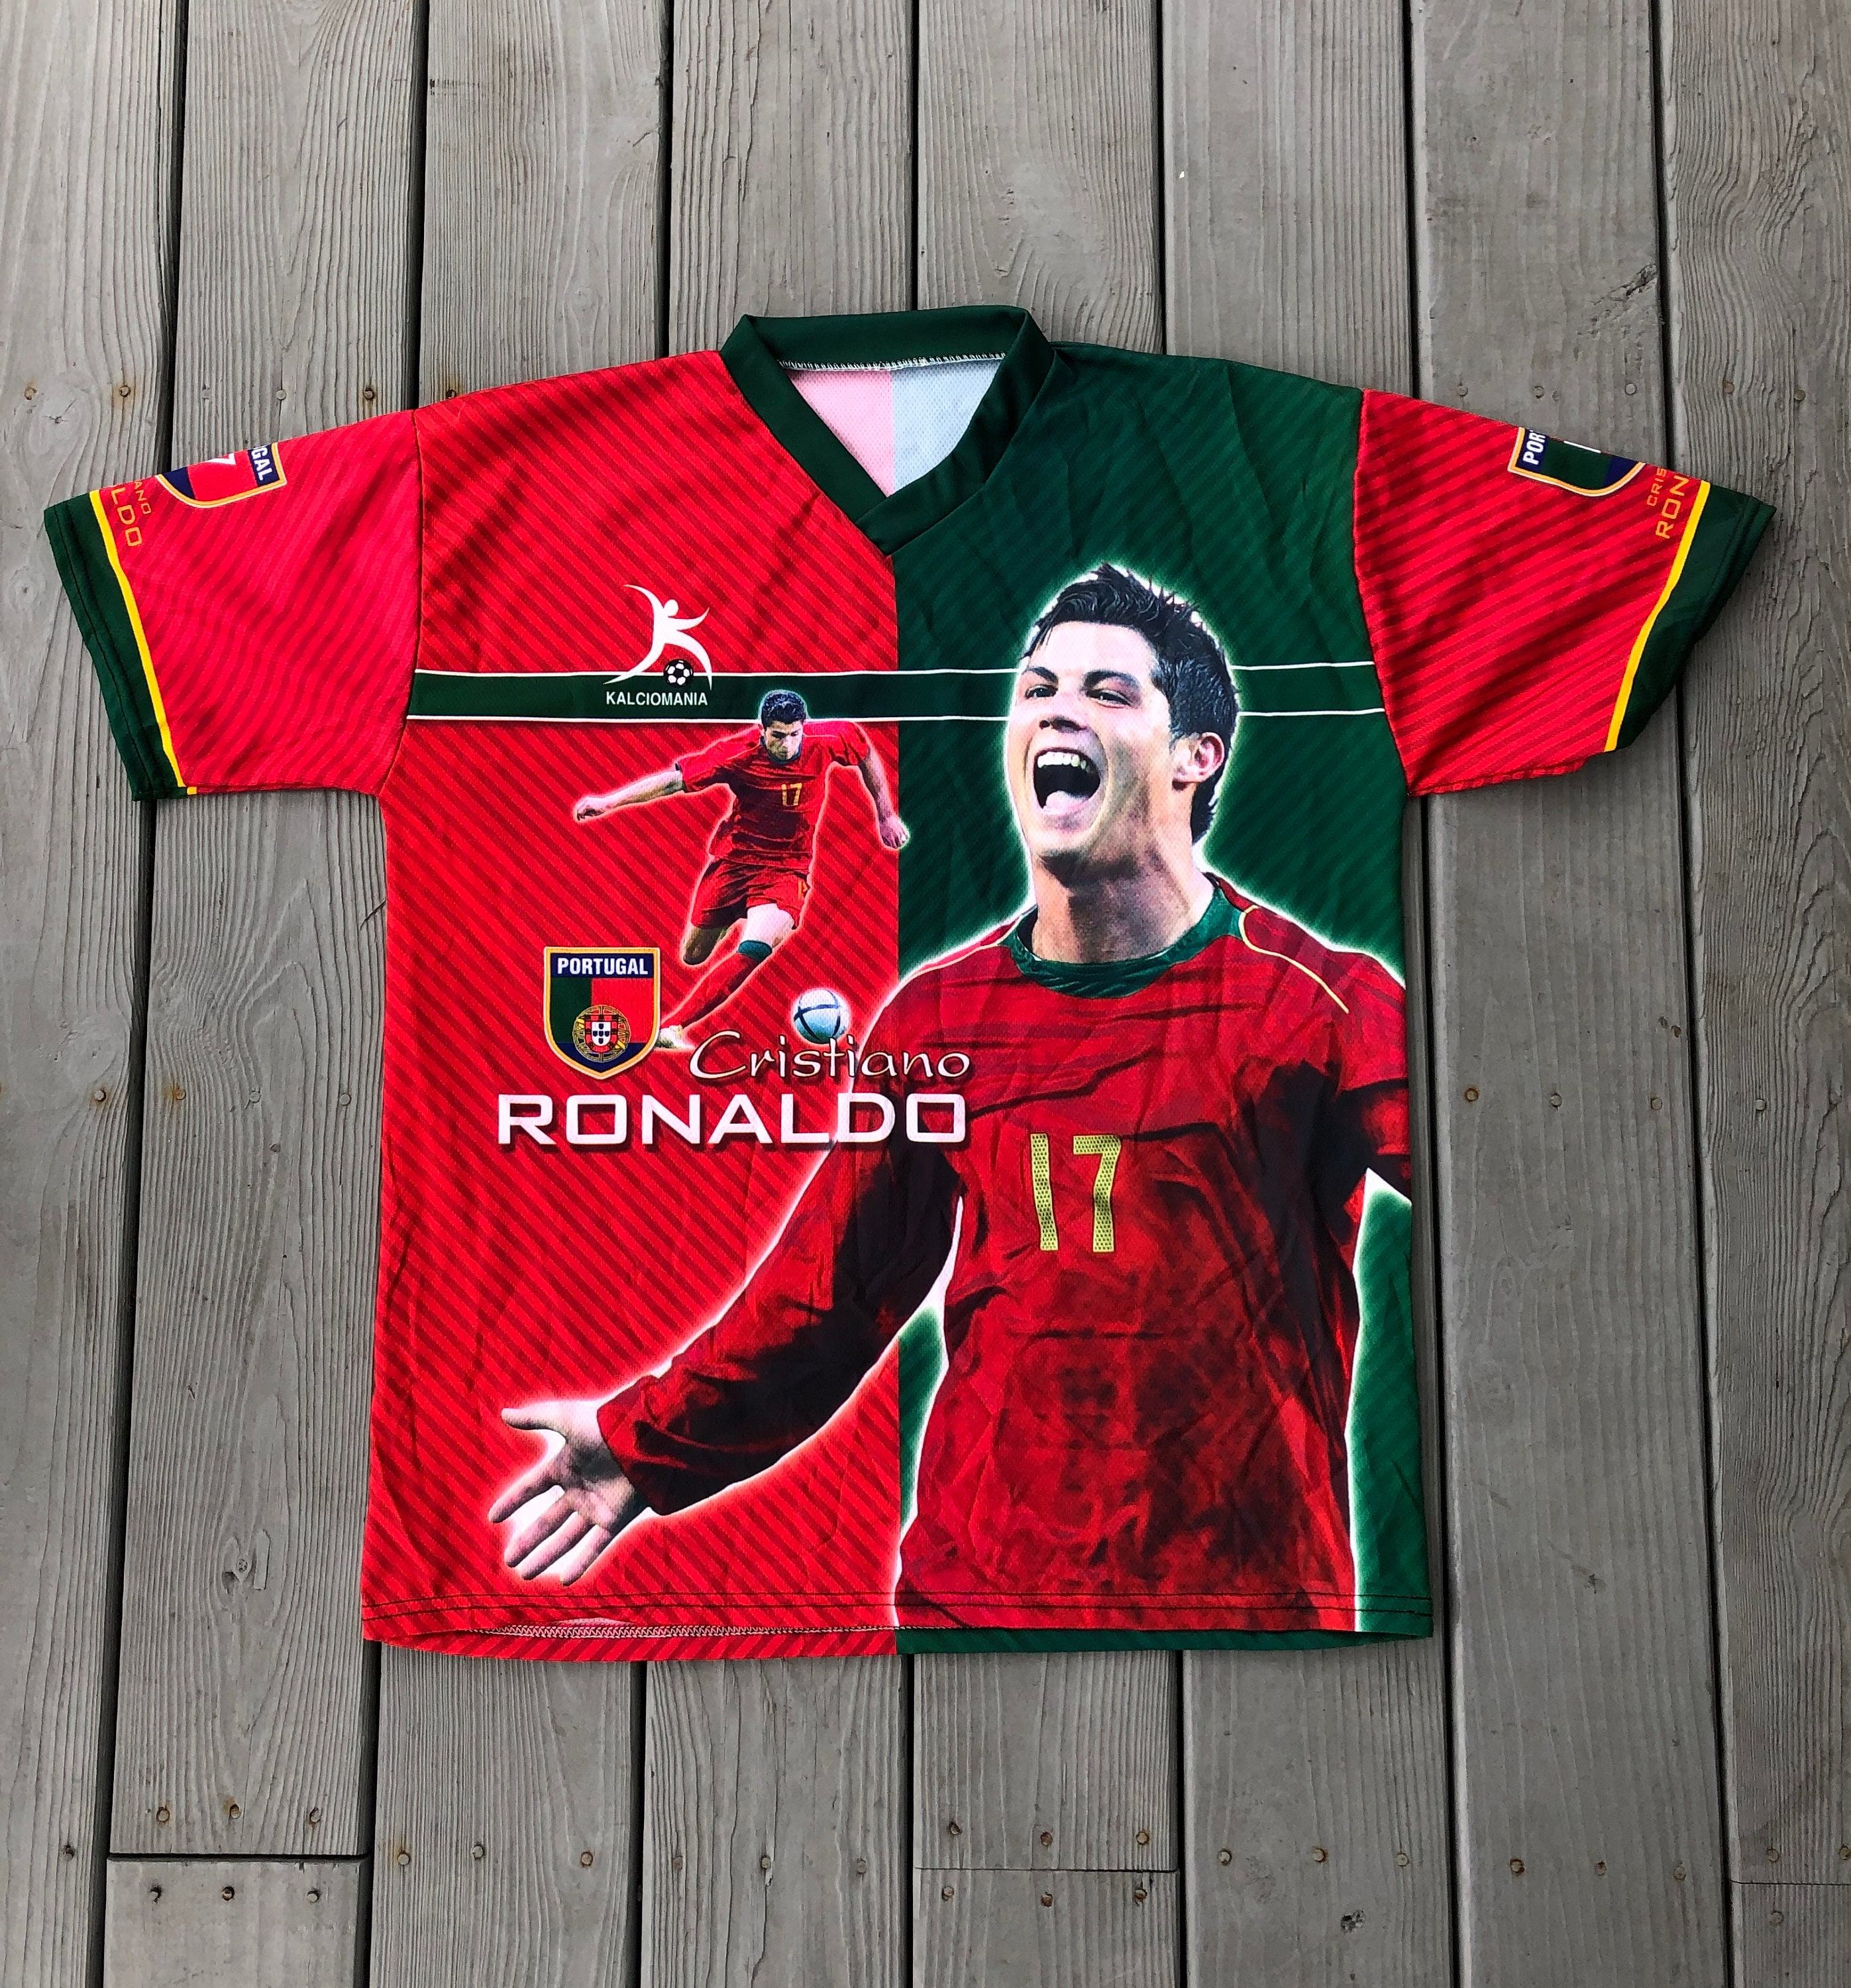 new style 0b0f9 ecf4d Cristiano Ronaldo Portugal all-over double sided bootleg jersey  t-shirt--size Medium